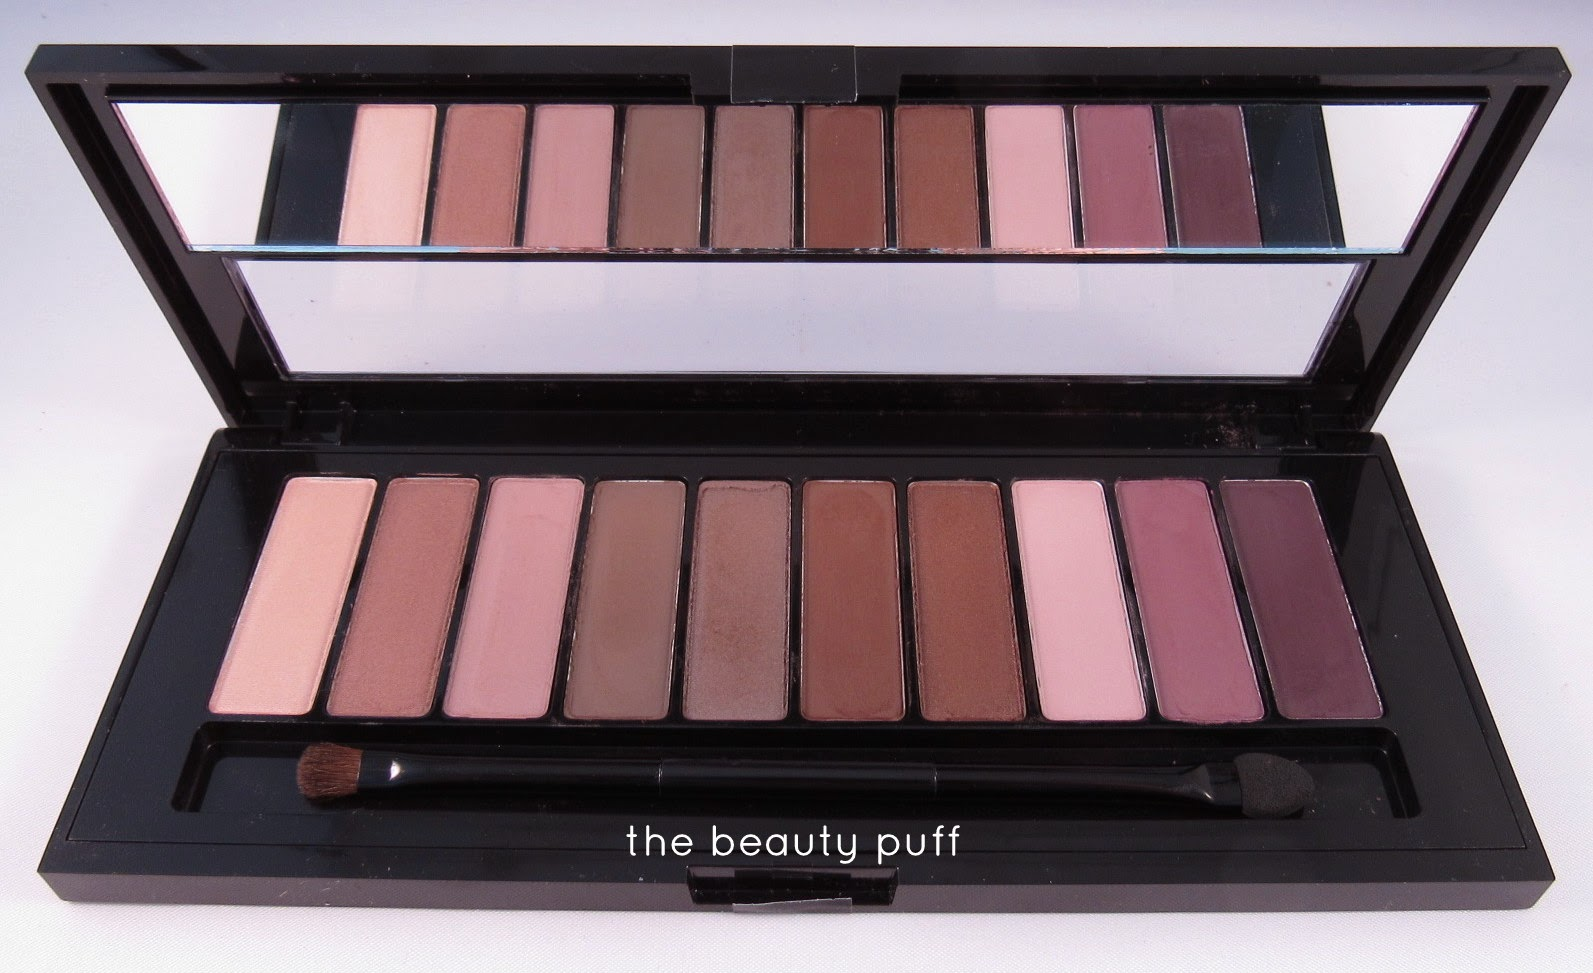 l'oreal la palette nude 2 - the beauty puff